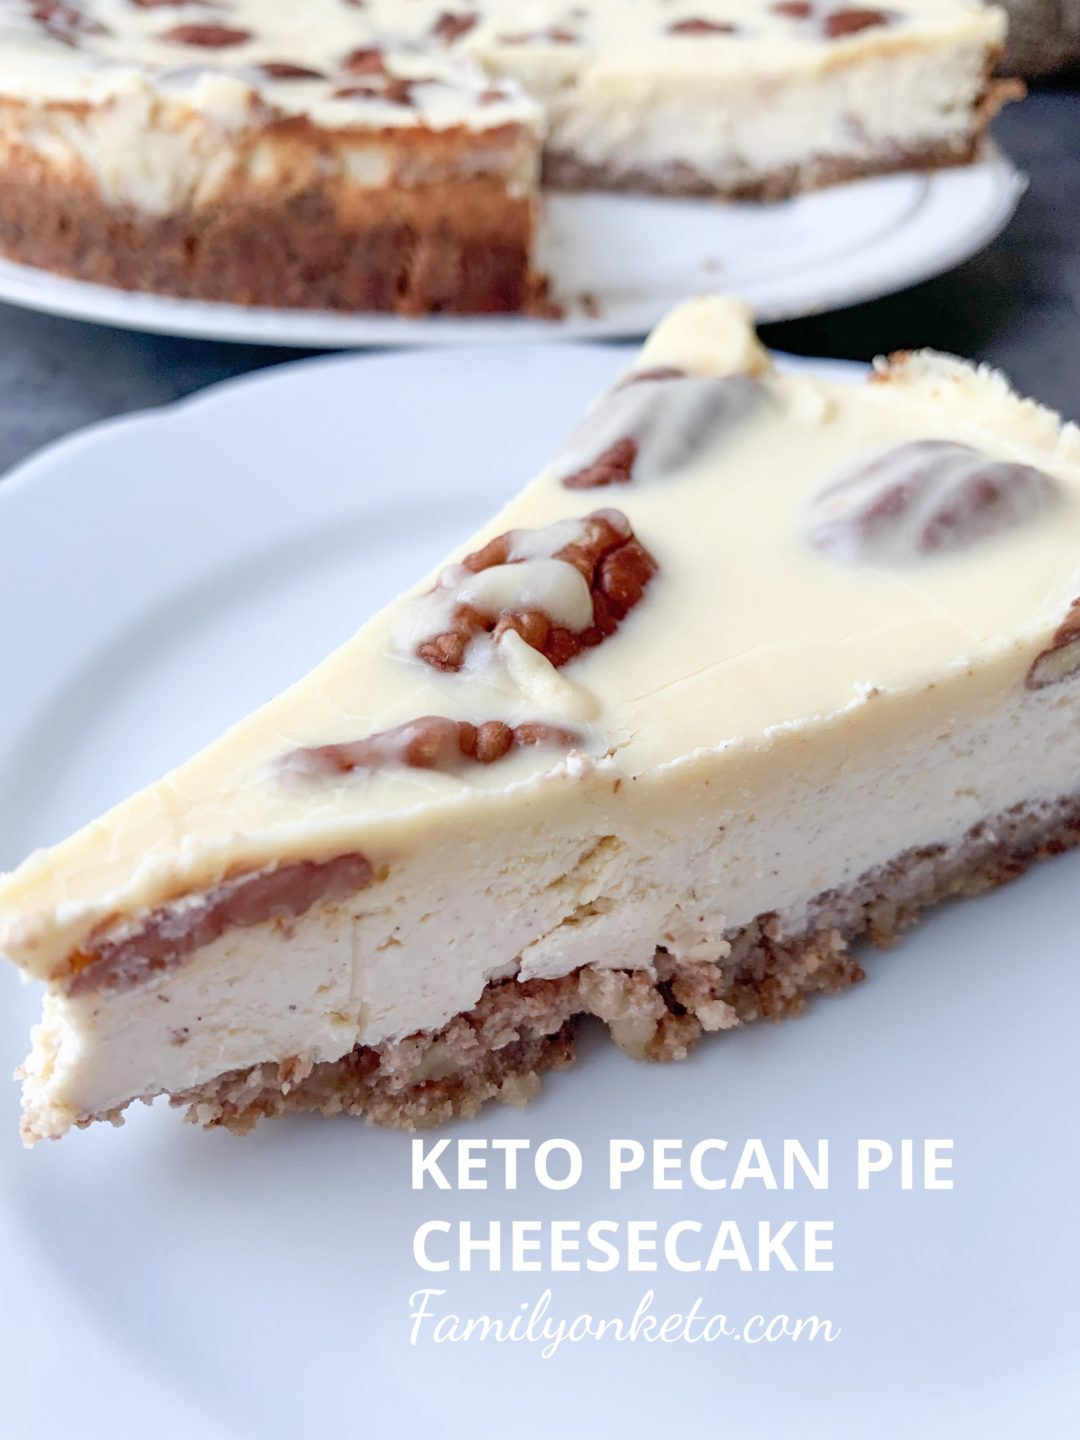 Picture of delicious keto pecan pie cheesecake with pecan caramel topping